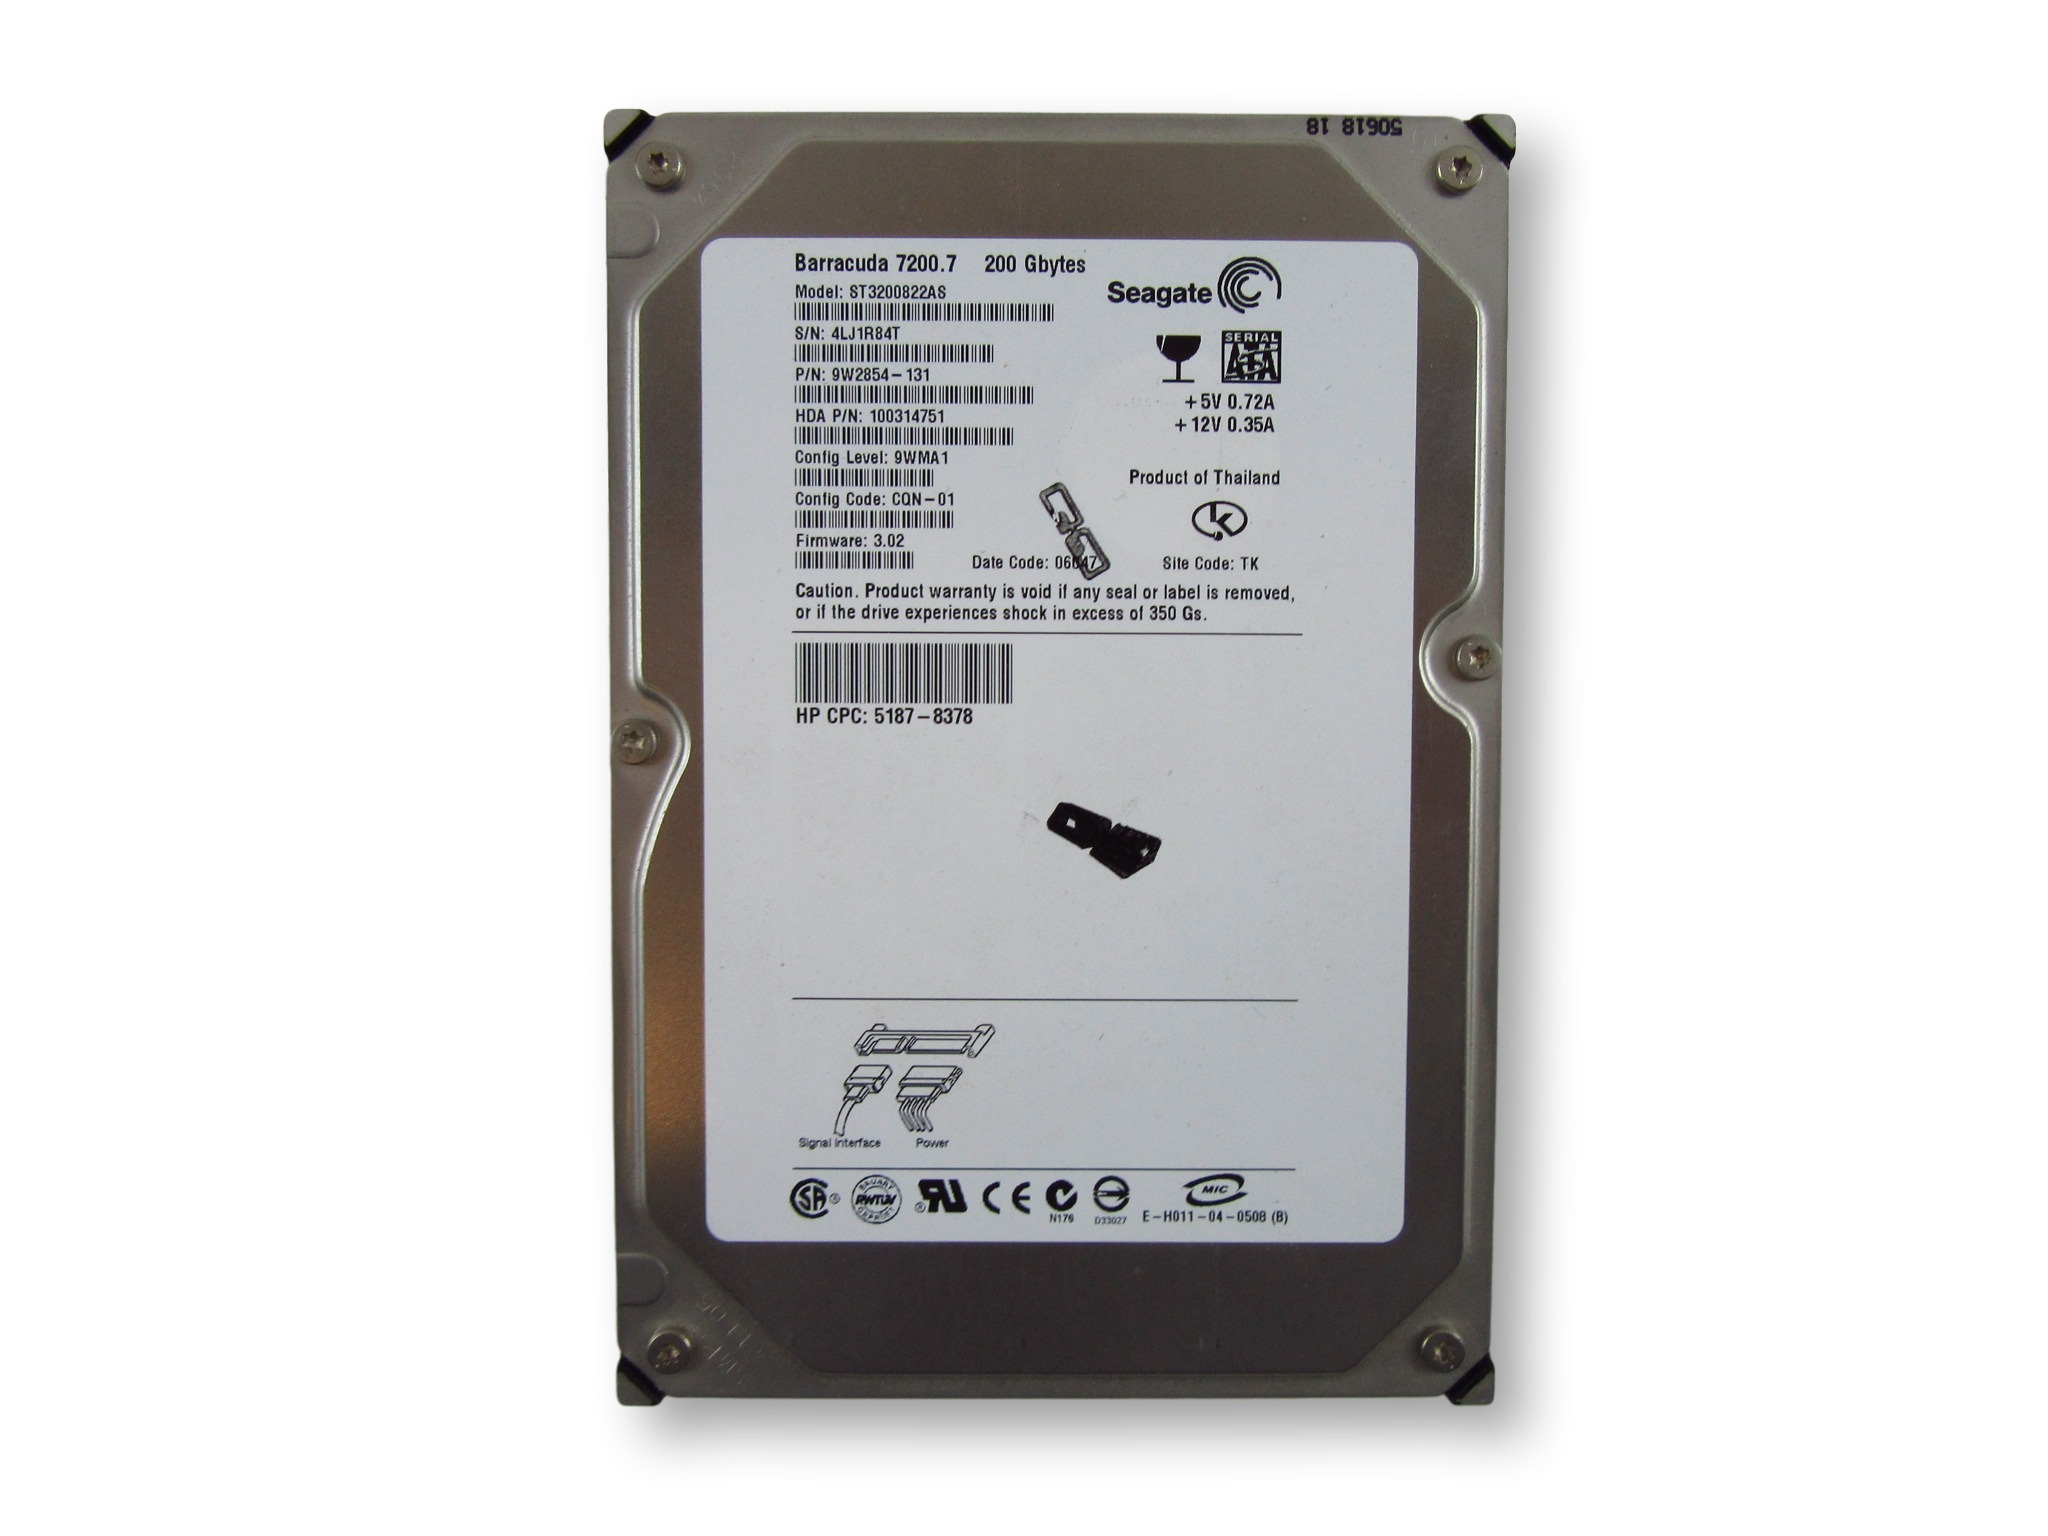 "Seagate Barracuda 7200.7 200GB 7200RPM 3.5"" SATA HDD (ST3200822AS)"